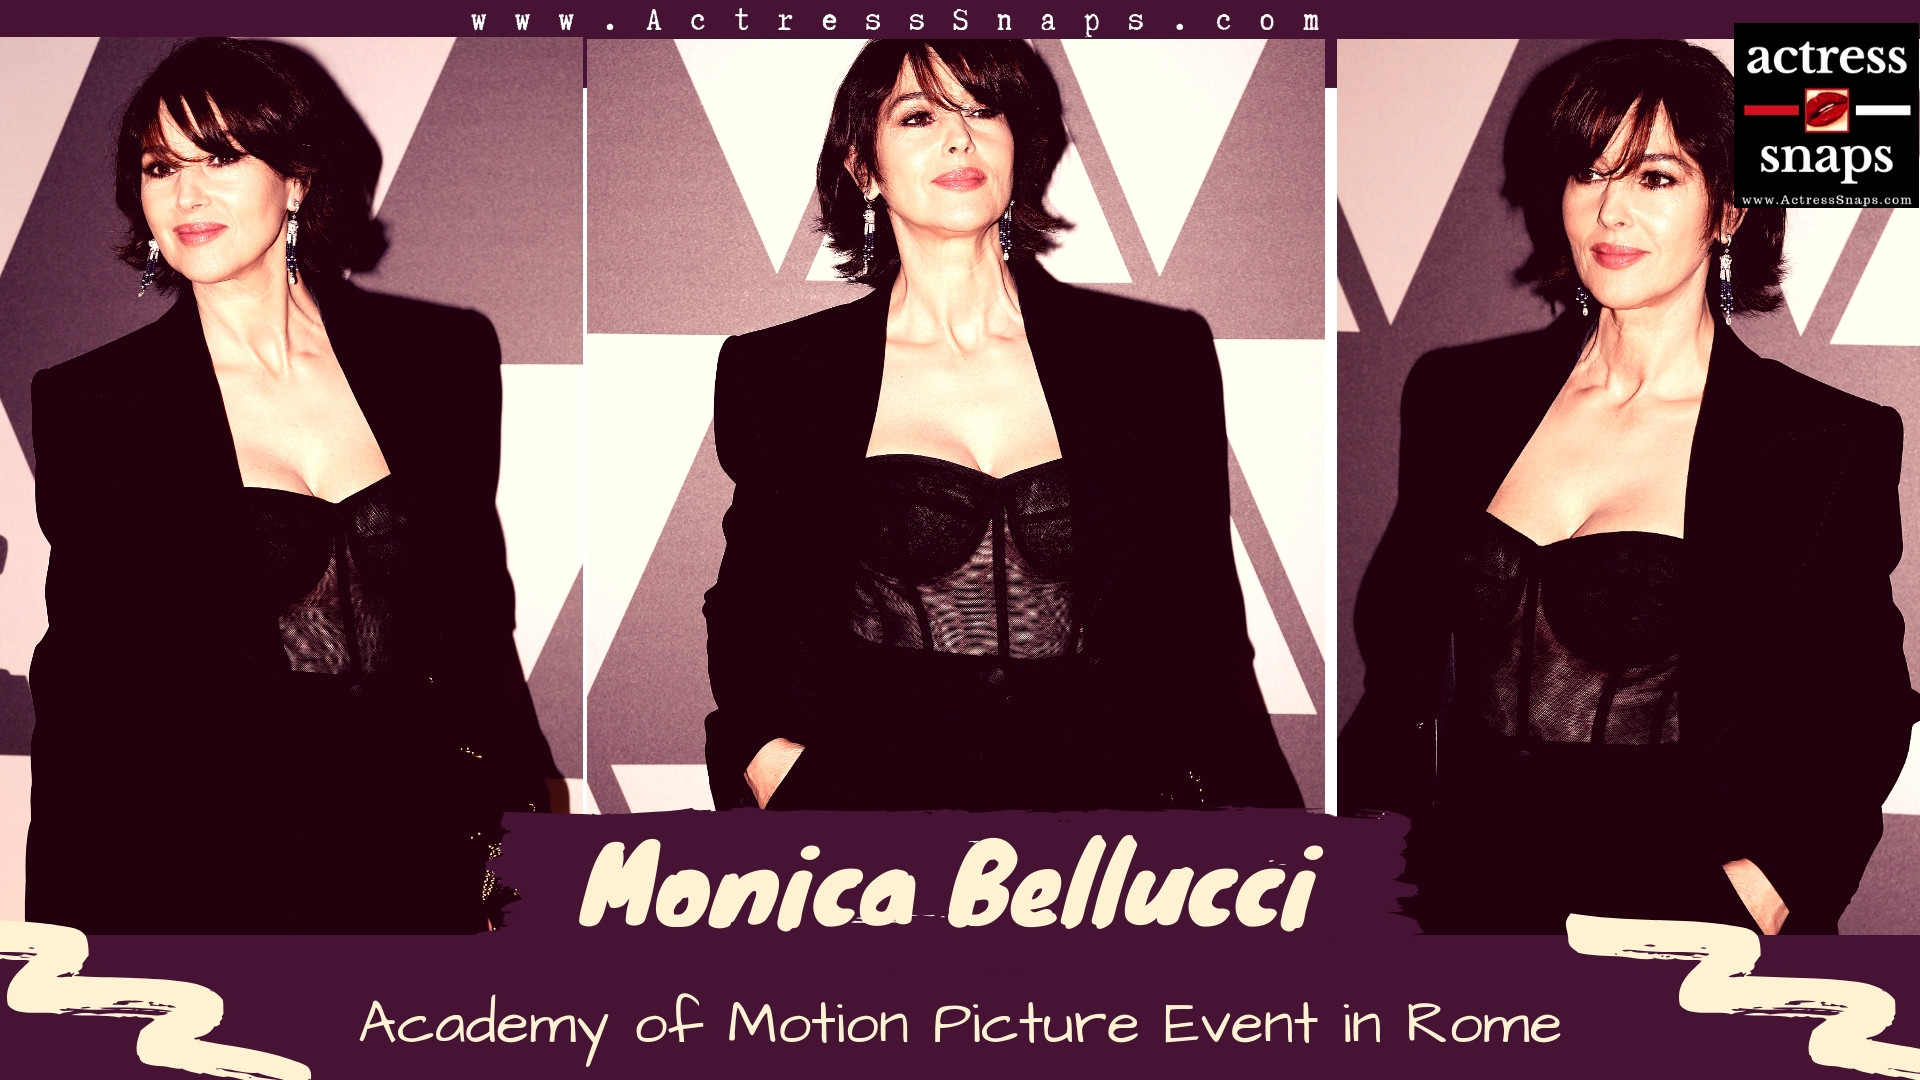 Monica Bellucci - Photos from Motion Picture Event in Rome - Sexy Actress Pictures | Hot Actress Pictures - ActressSnaps.com